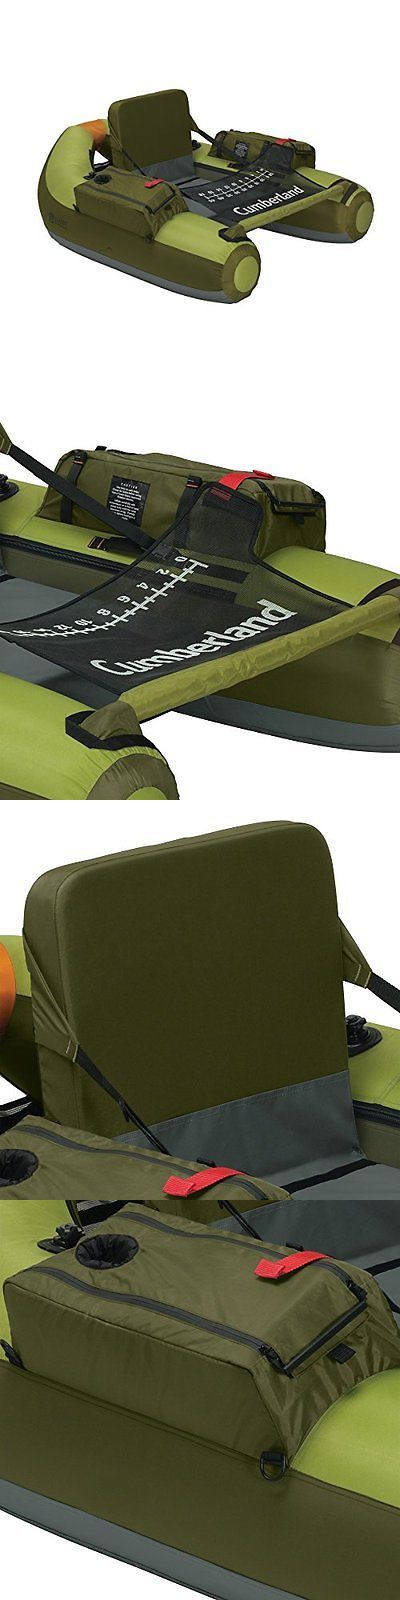 Float Tubes 179995: Fishing Float Tube Inflatable Classic Accessories Cumberland W Backpack Straps -> BUY IT NOW ONLY: $234.44 on eBay!